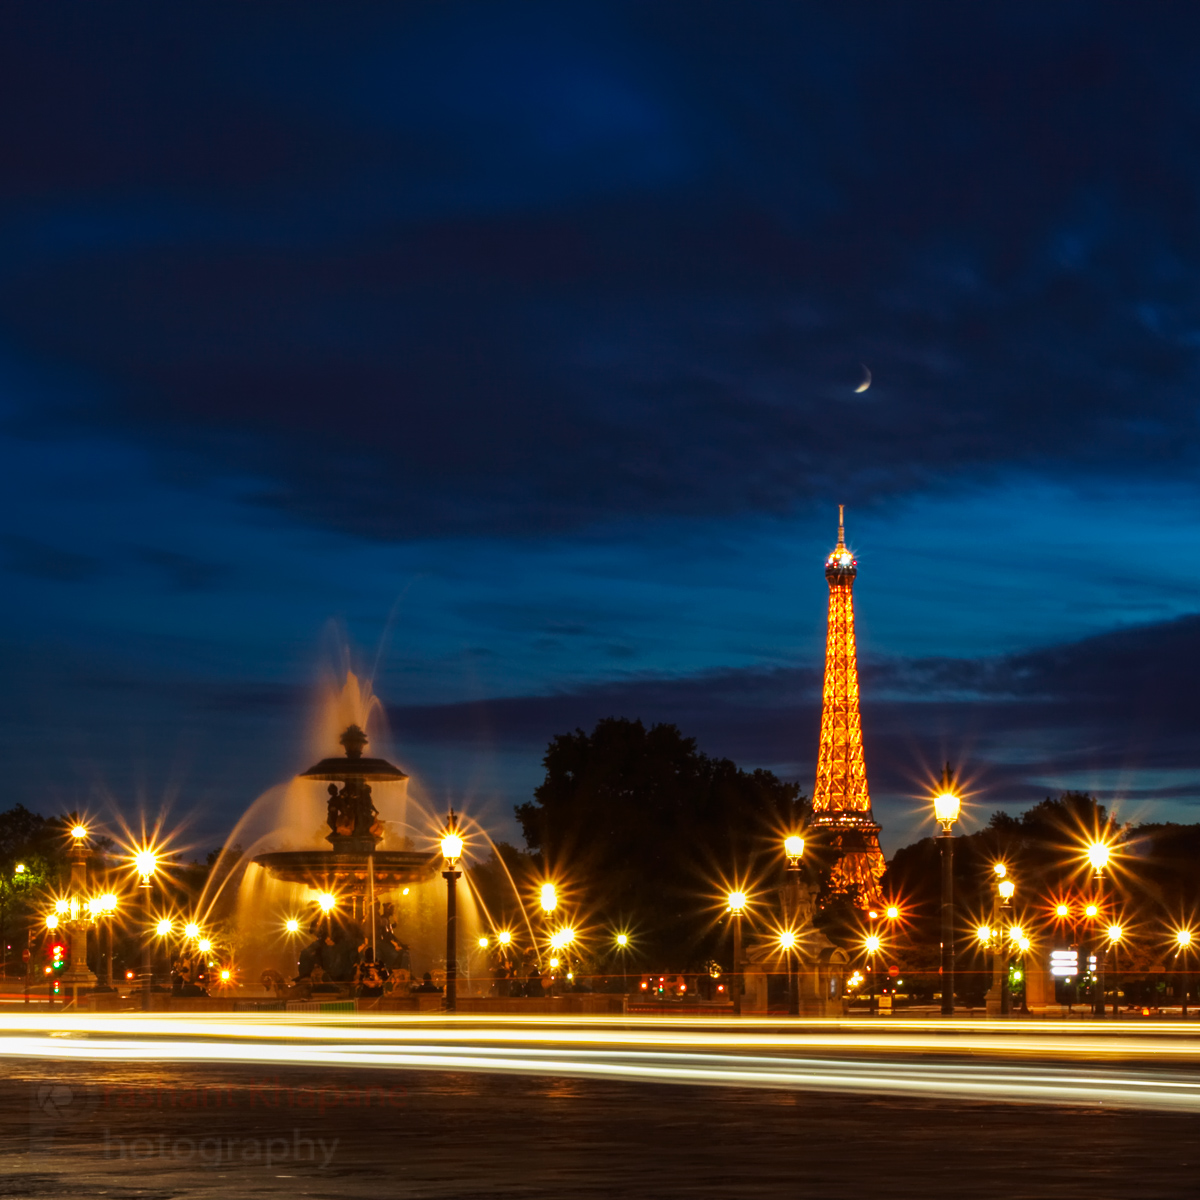 The image I had pre-visualised during my first three visits to the city of light. I just got lucky with parting clouds revealing the crescent moon at the last minute.